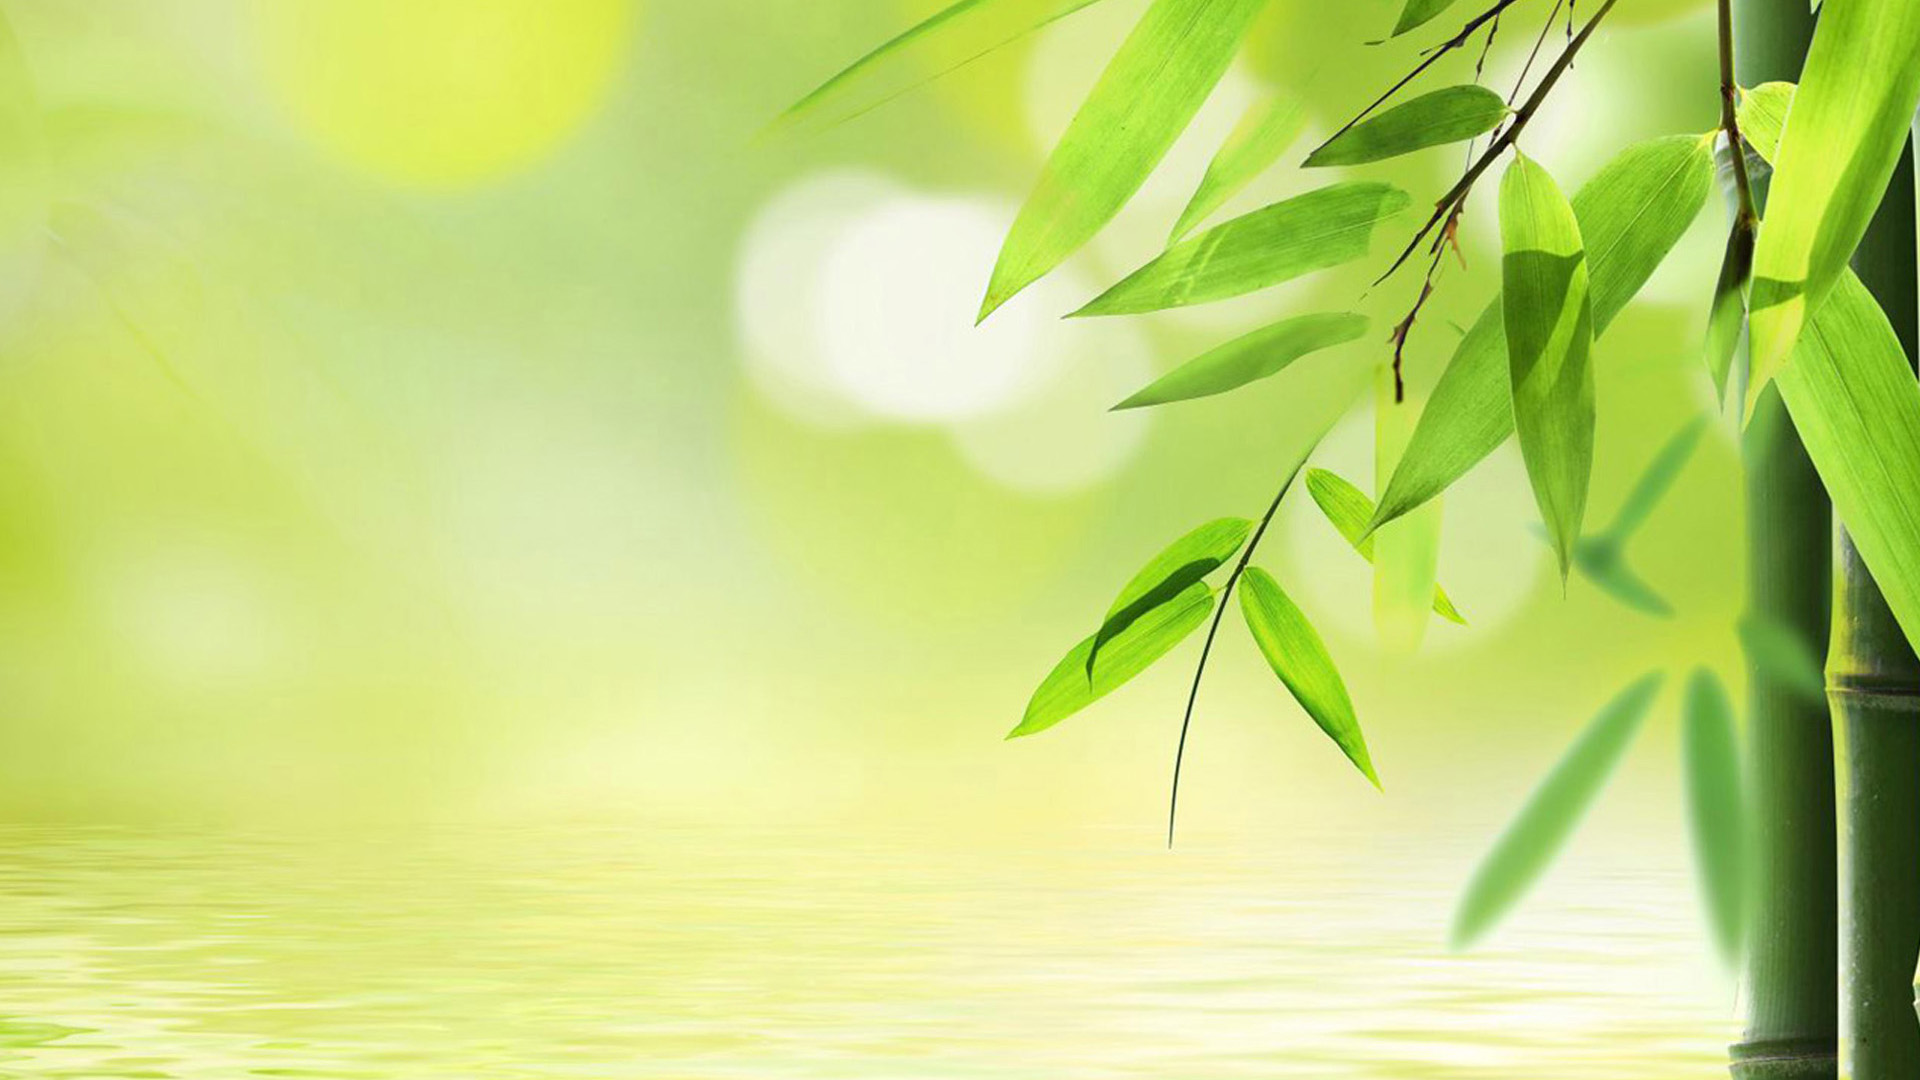 Free HD Bamboo Wallpapers